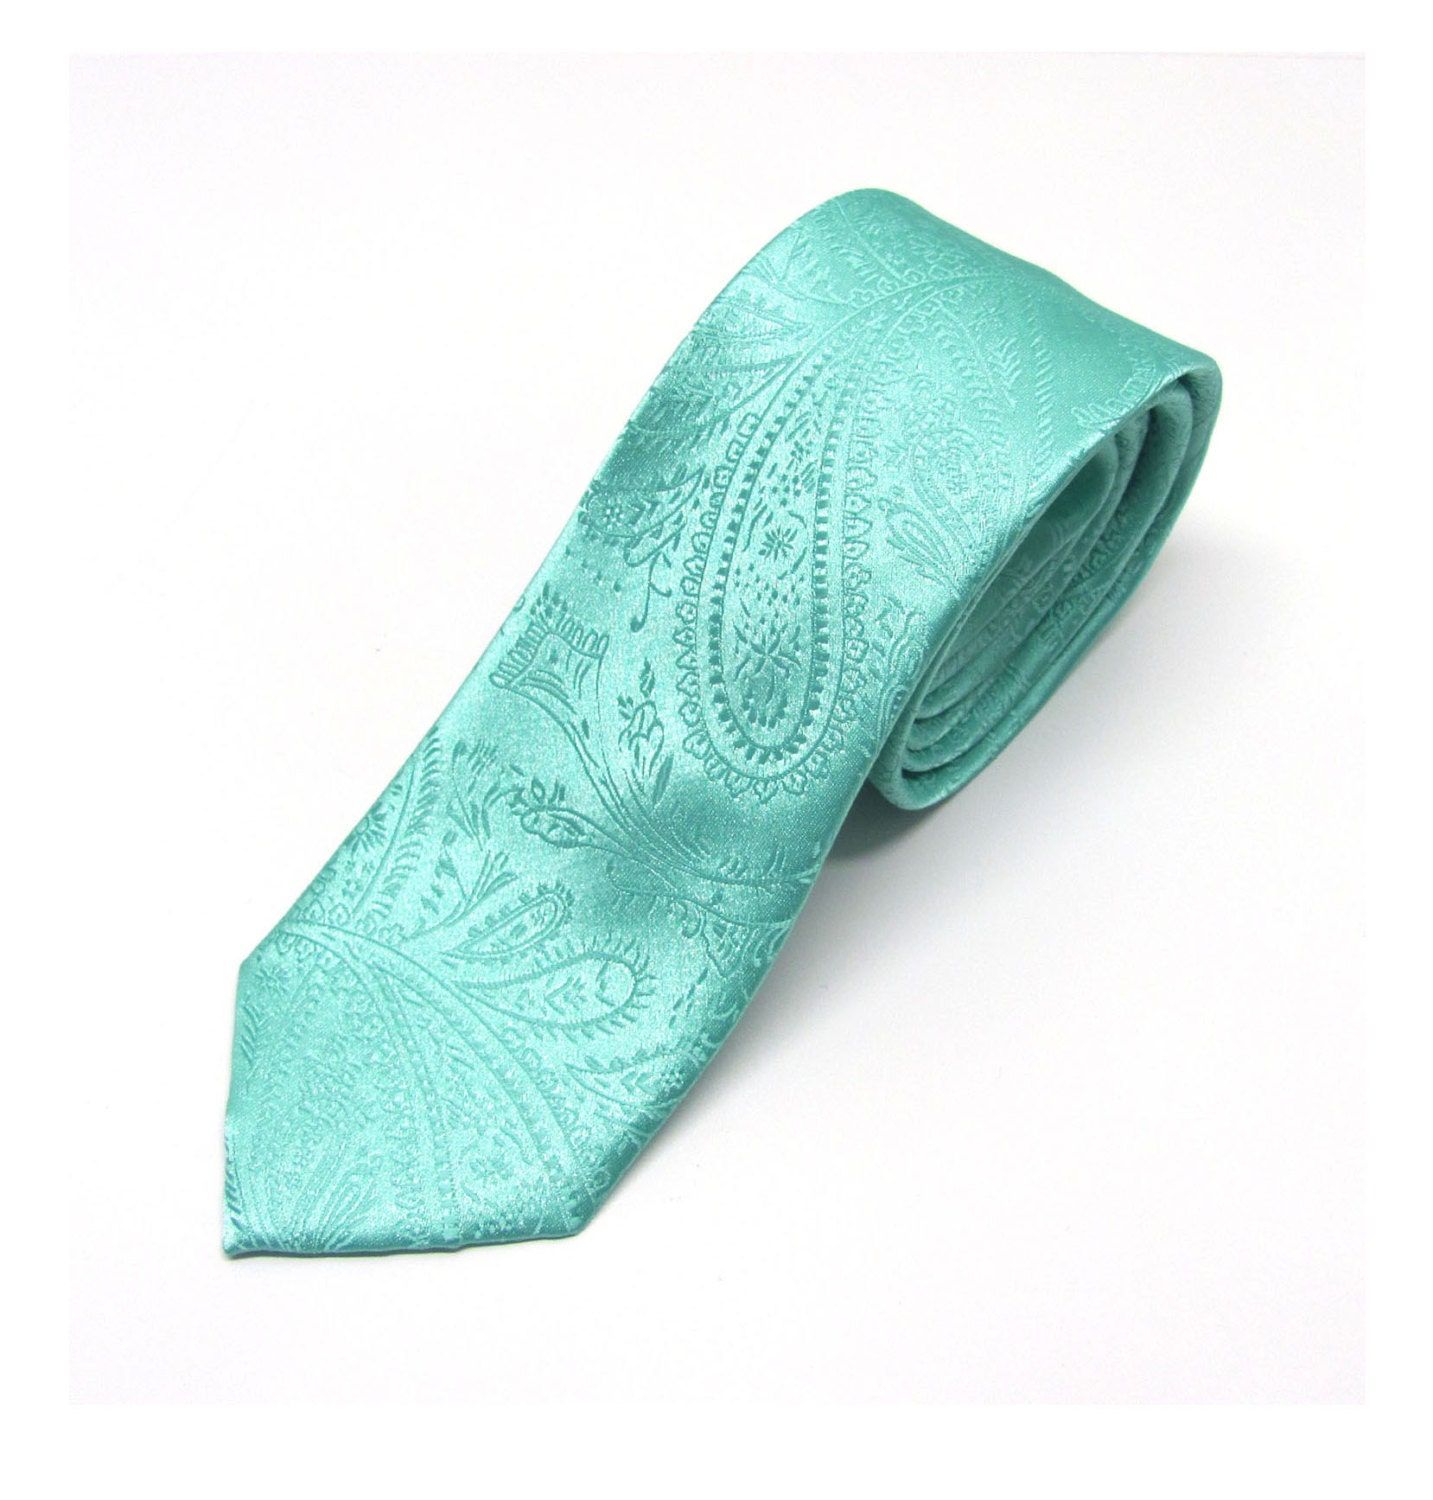 Tie Outlet | Cheapest Wholesale Ties and Bow Ties in NYCAmazing Customer Service · On Sale · Return Policy · Order Tracking.